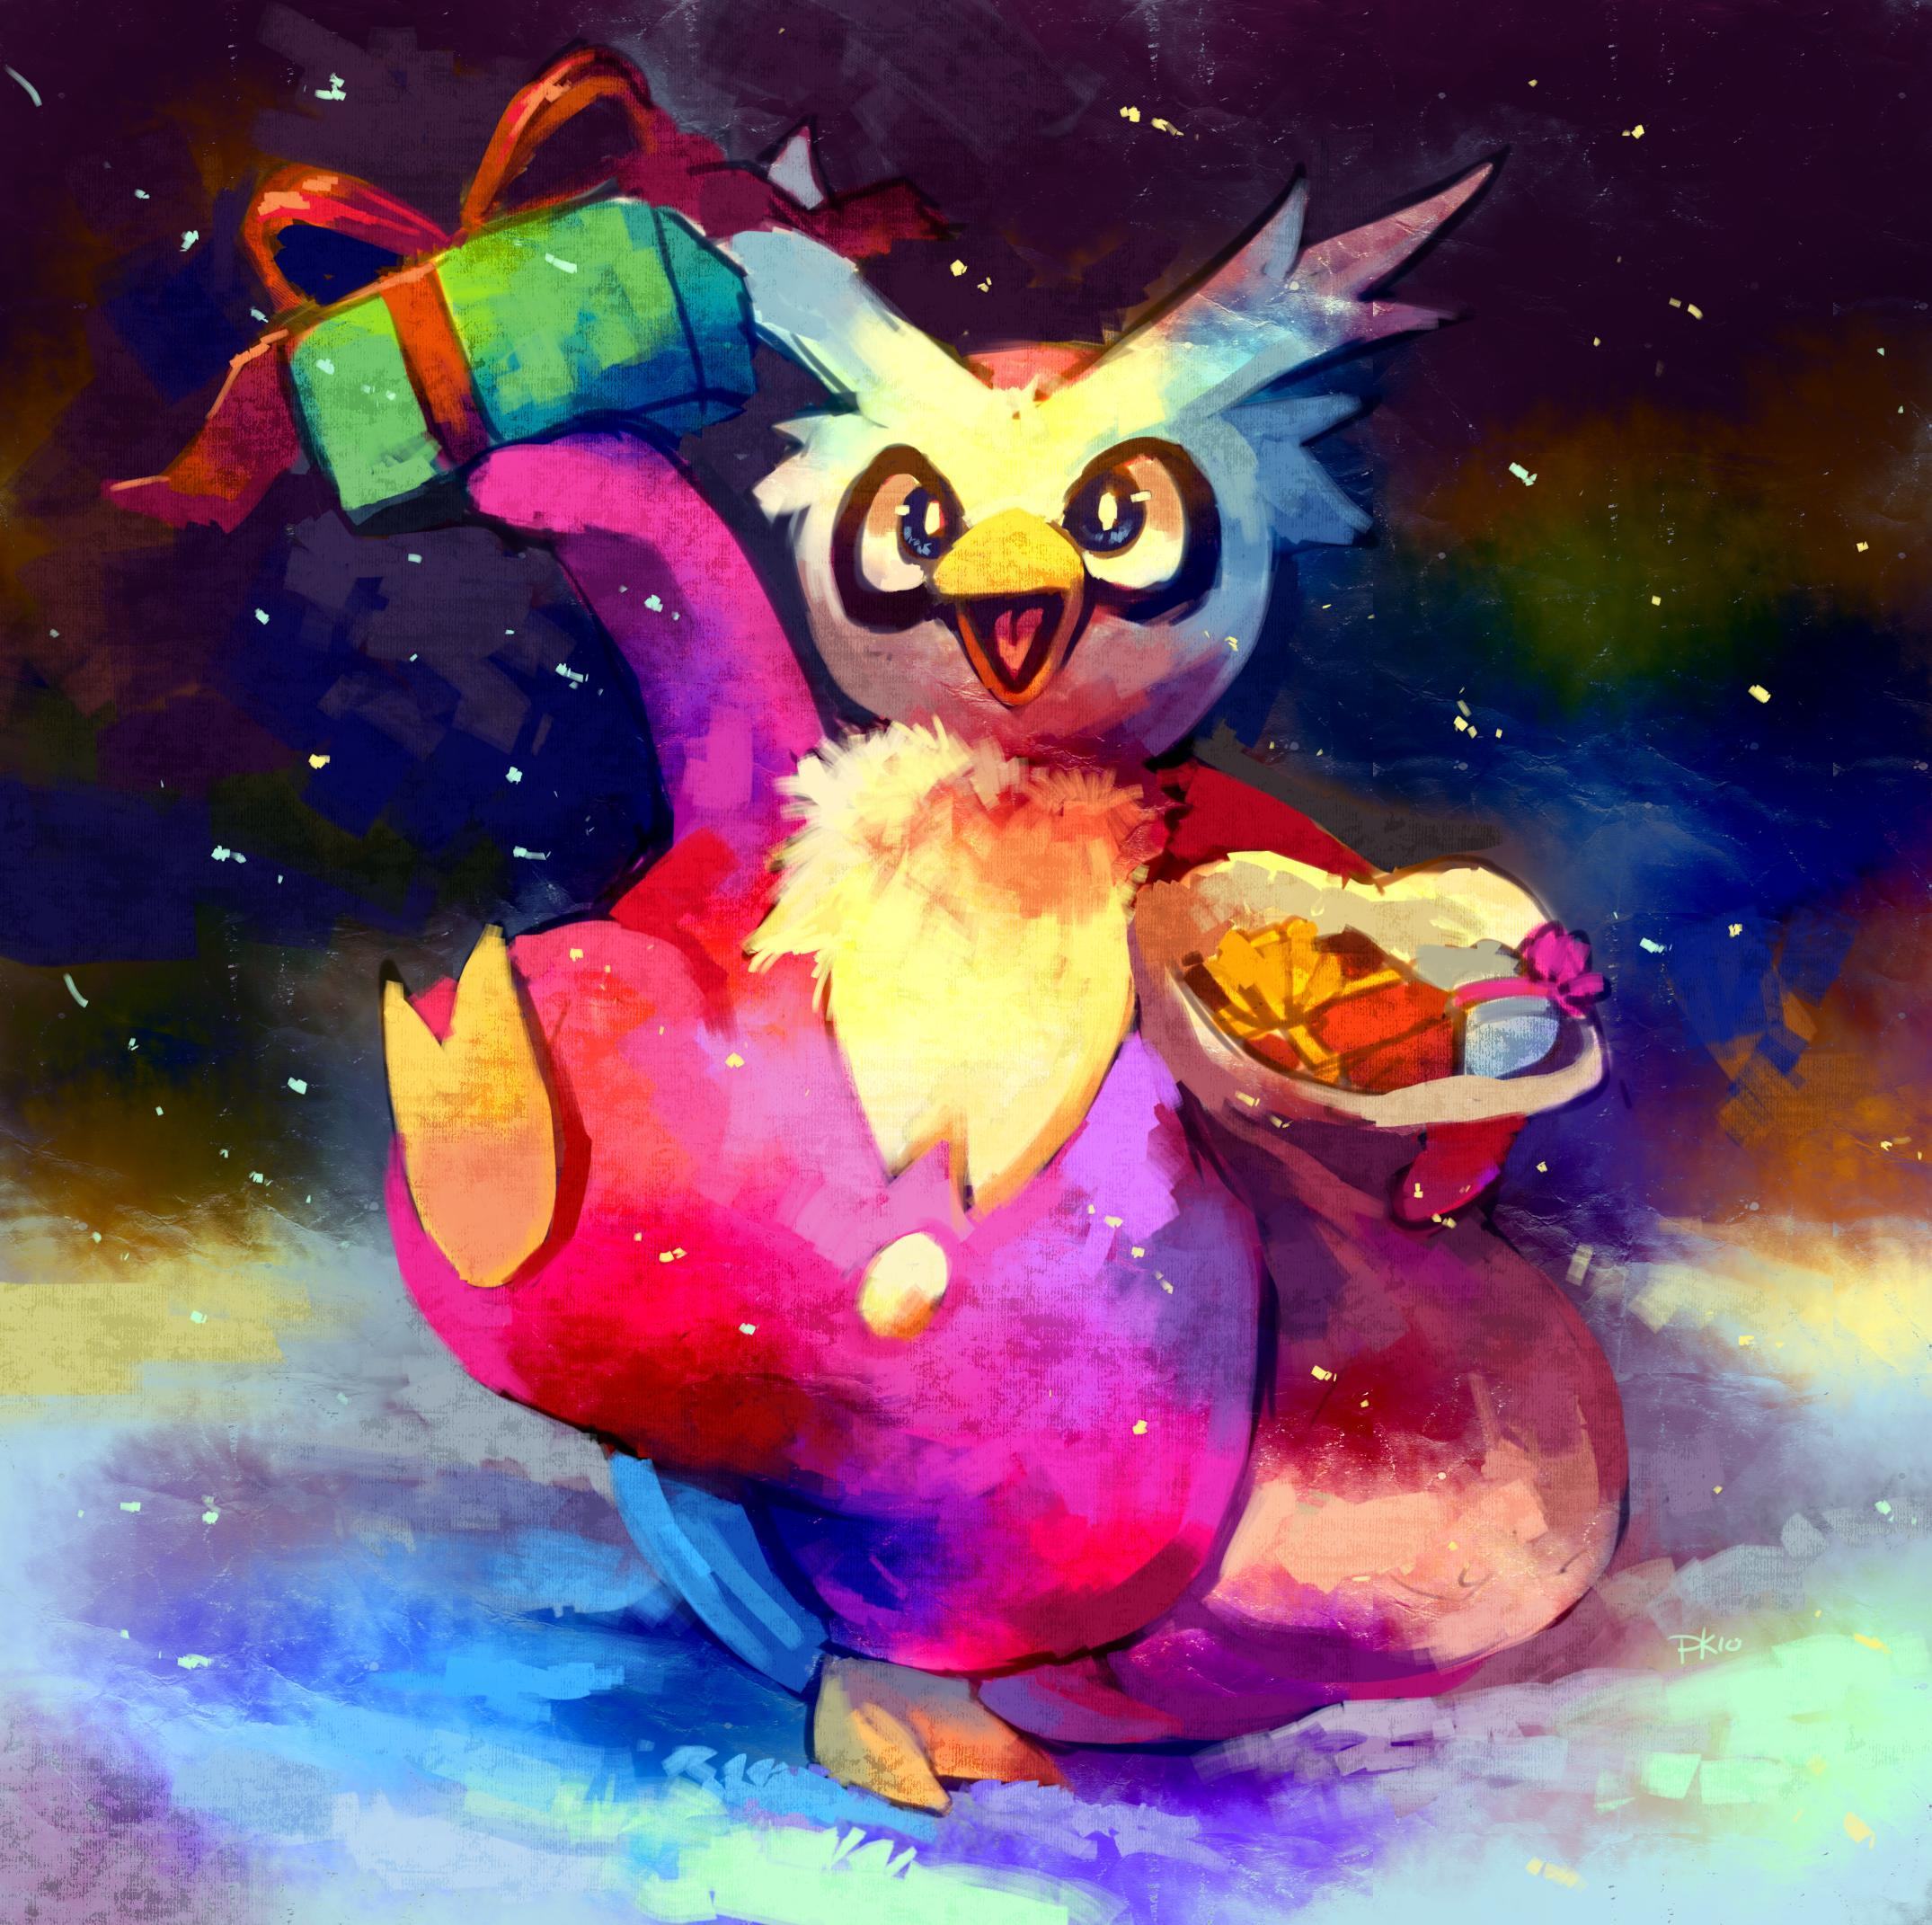 Delibird | Type glace | Pinterest | Pokémon, Pokemon stuff and Nintendo